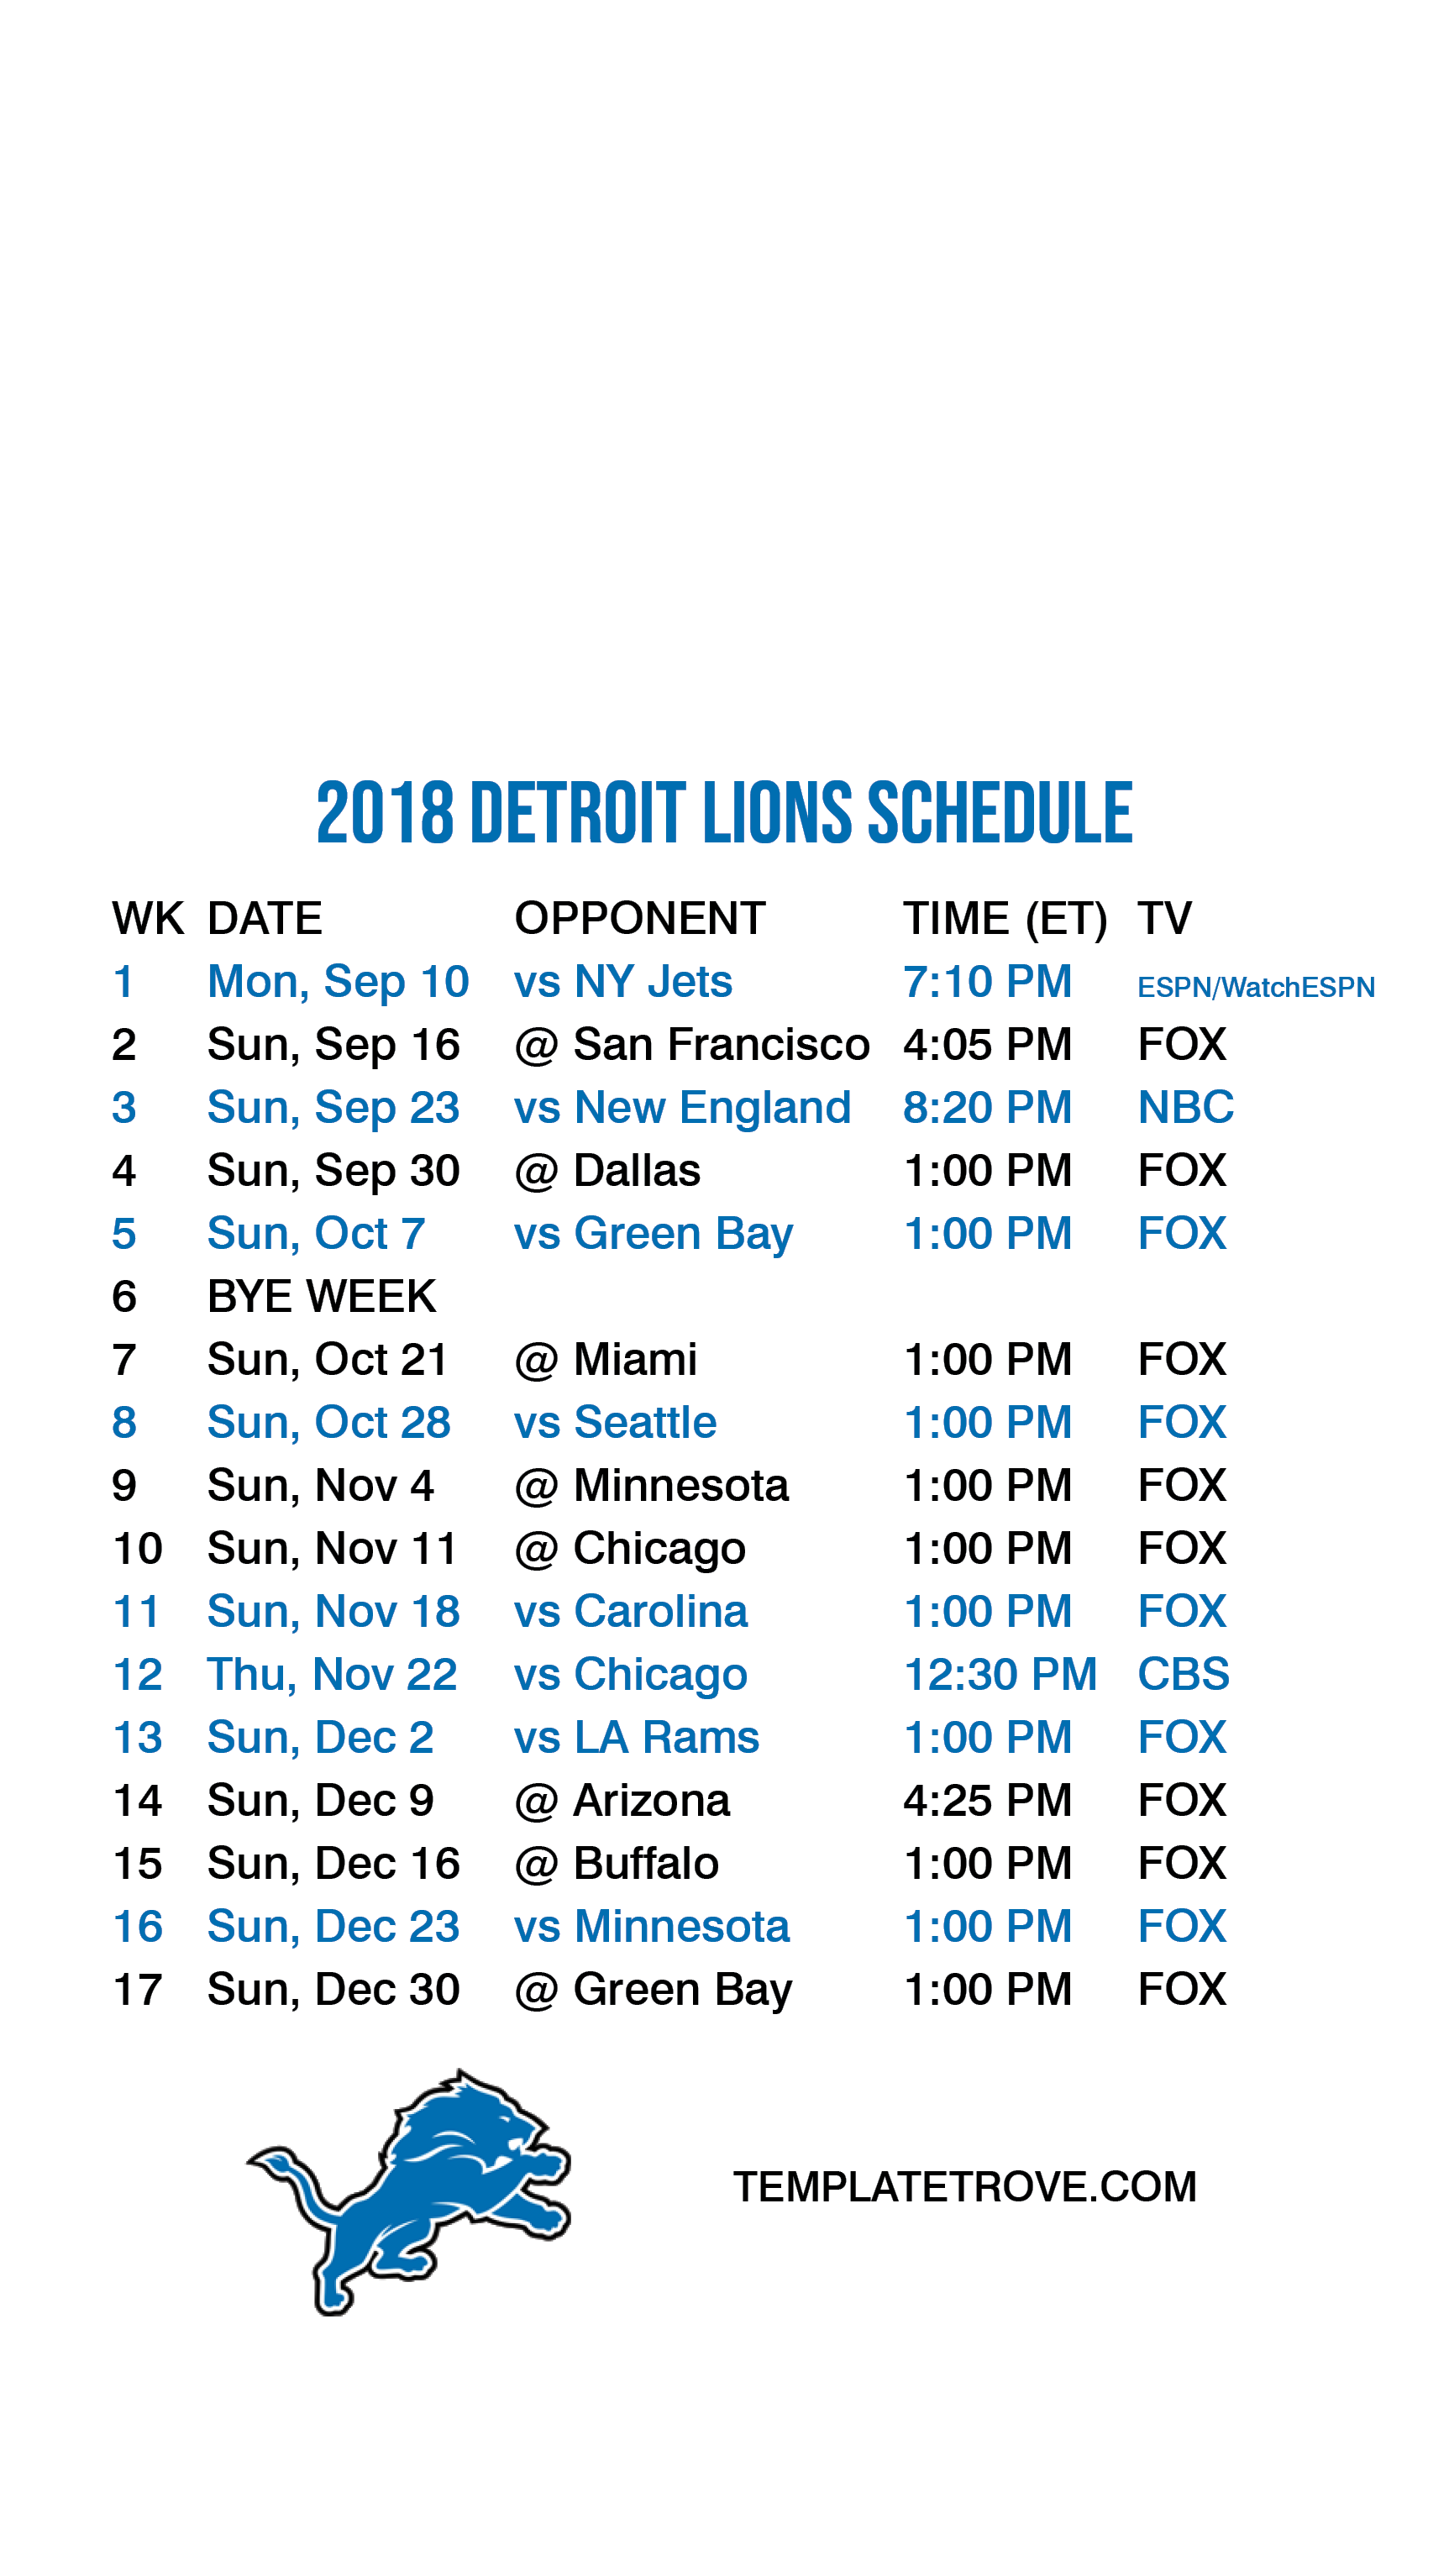 20182019 detroit lions lock screen schedule for iphone 6